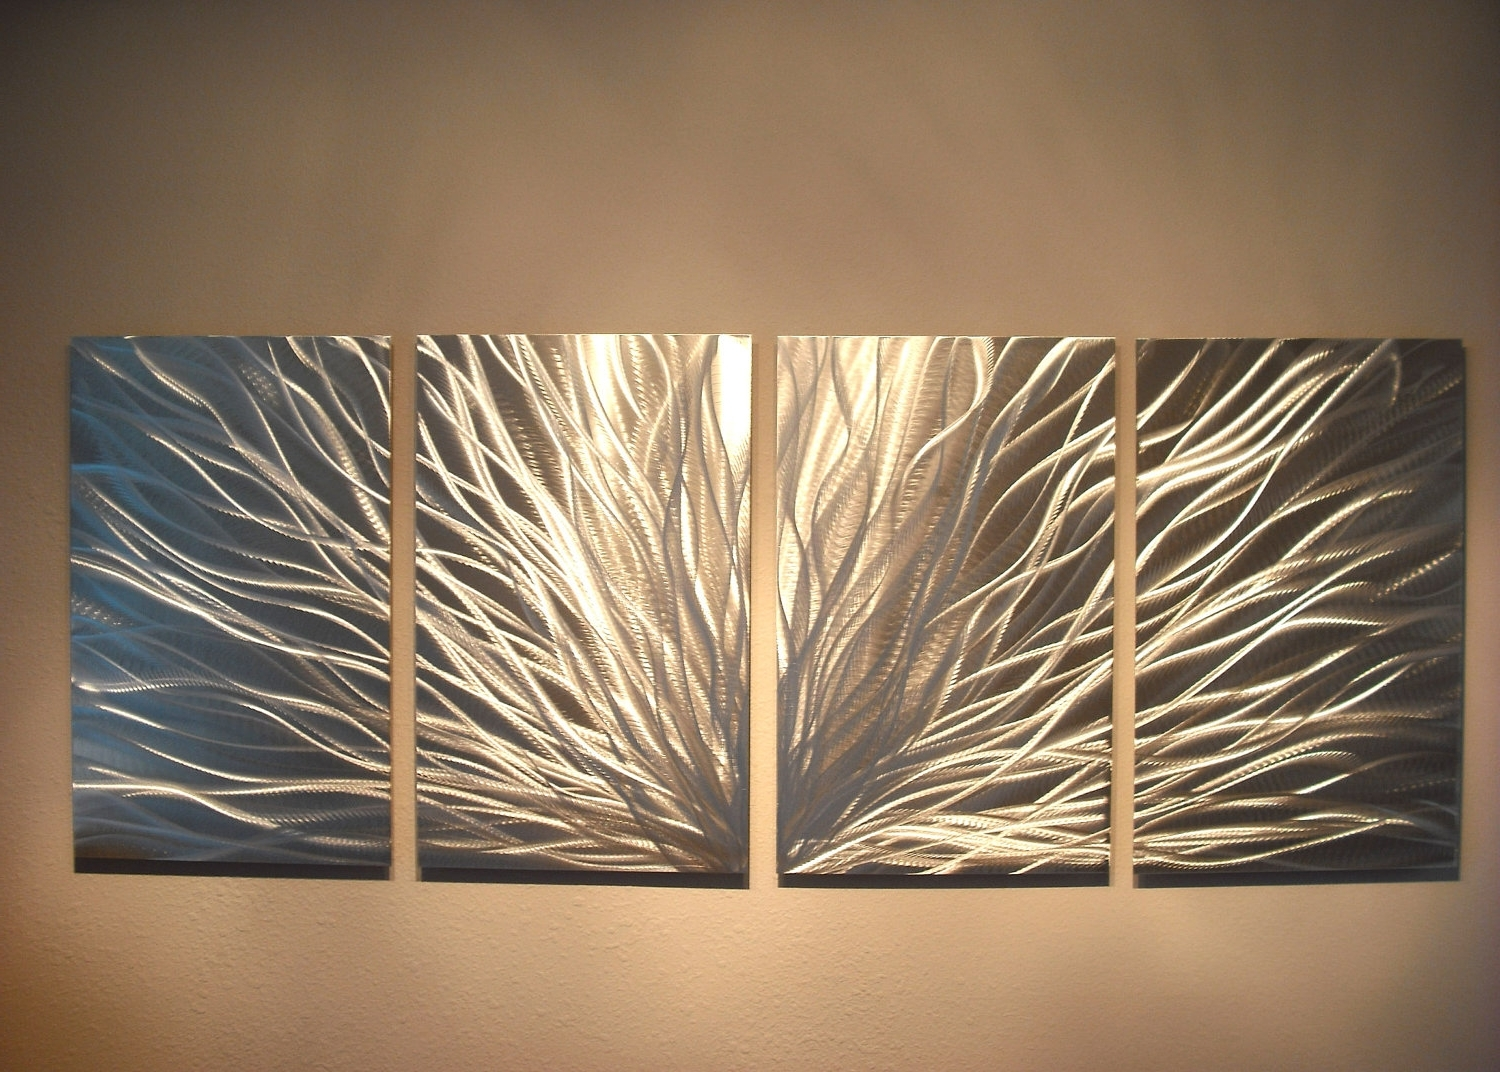 Fashionable Paints : Metal Wall Art Argos With Metal Wall Art Decor Abstract For Abstract Metal Wall Art Australia (View 8 of 15)